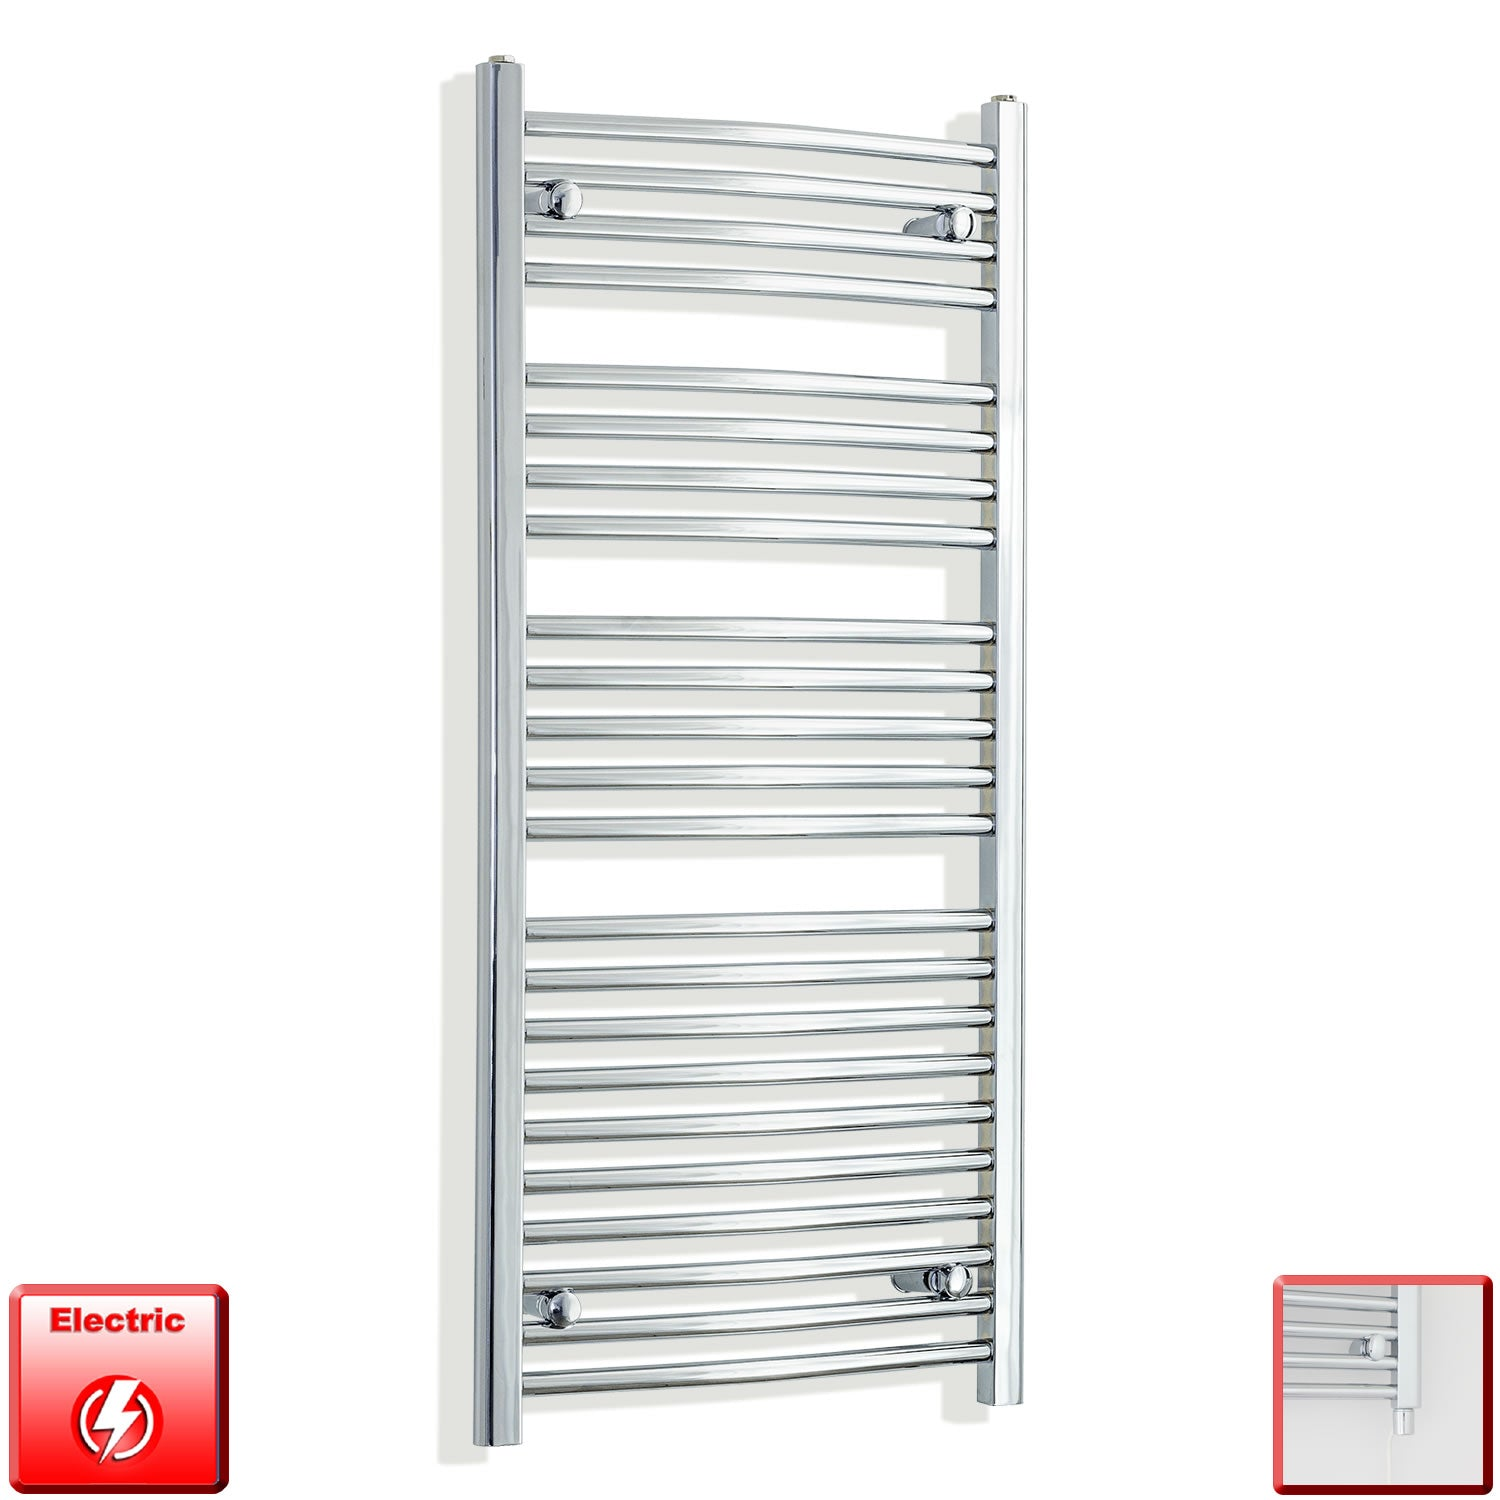 550 x 1200 Curved Chrome Heated Towel Rail Radiator Gas or Electric,Pre-Filled Single Heat Element